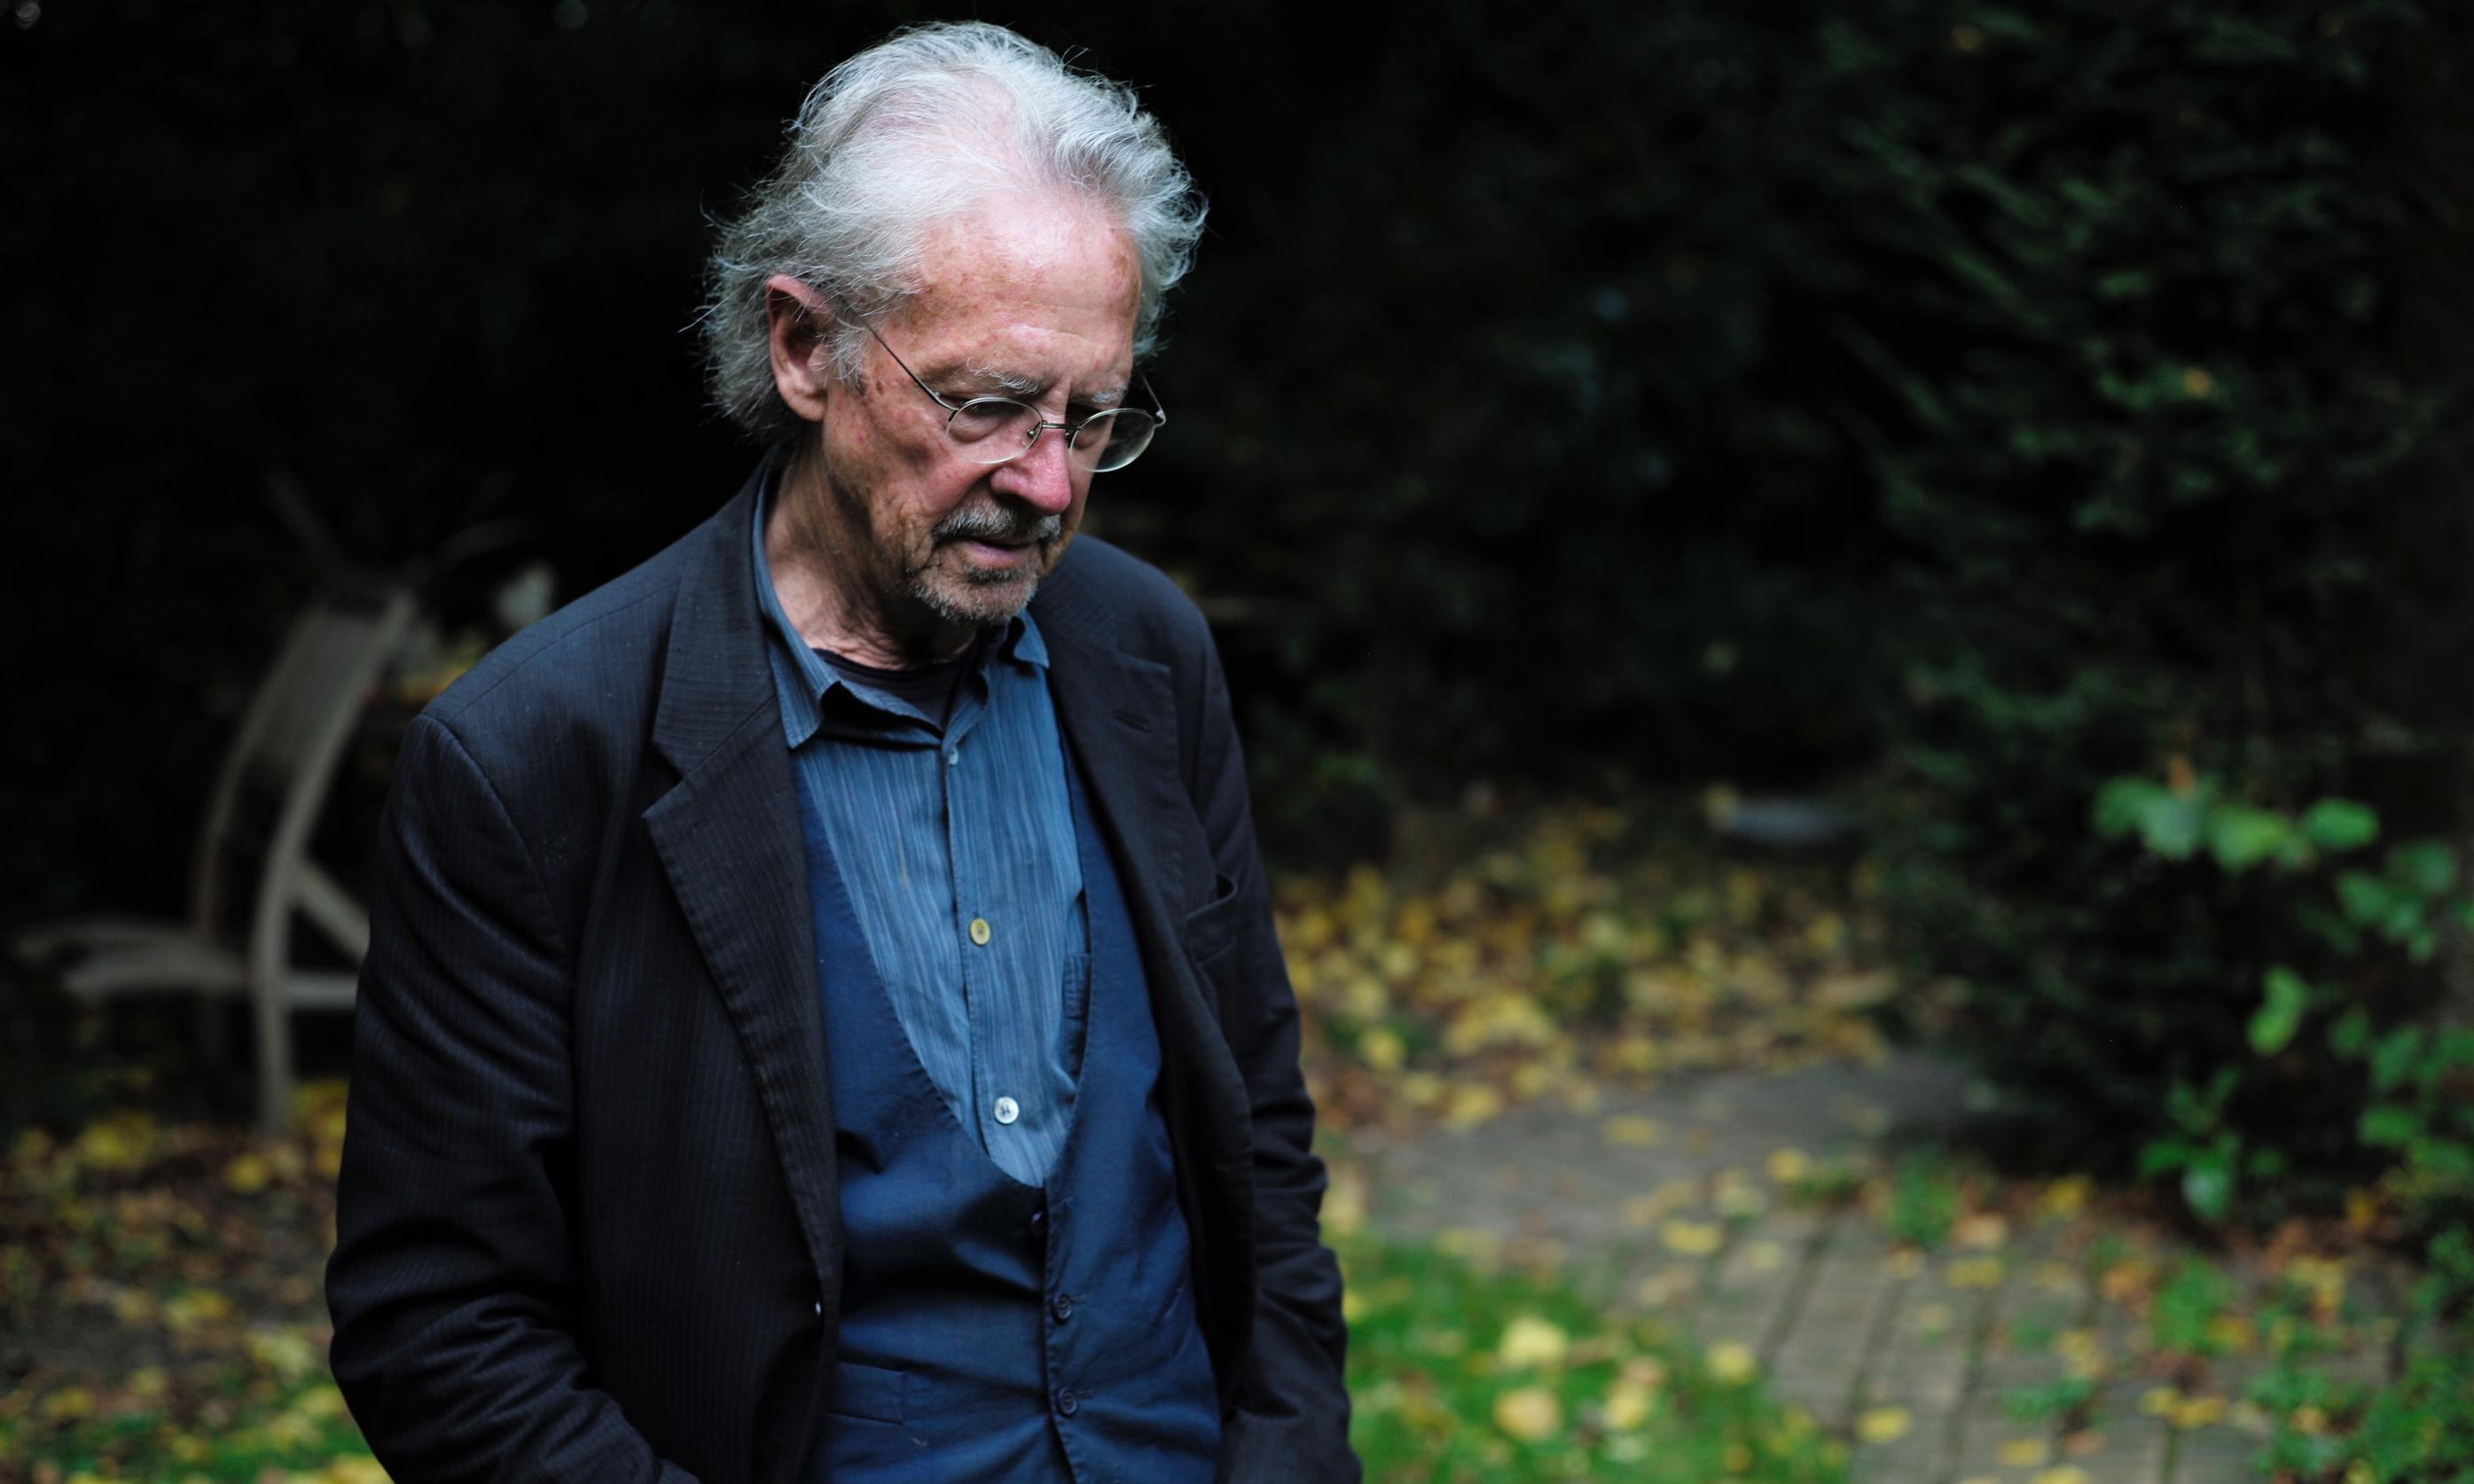 Peter Handke's Nobel prize that dishonours the victims of genocide